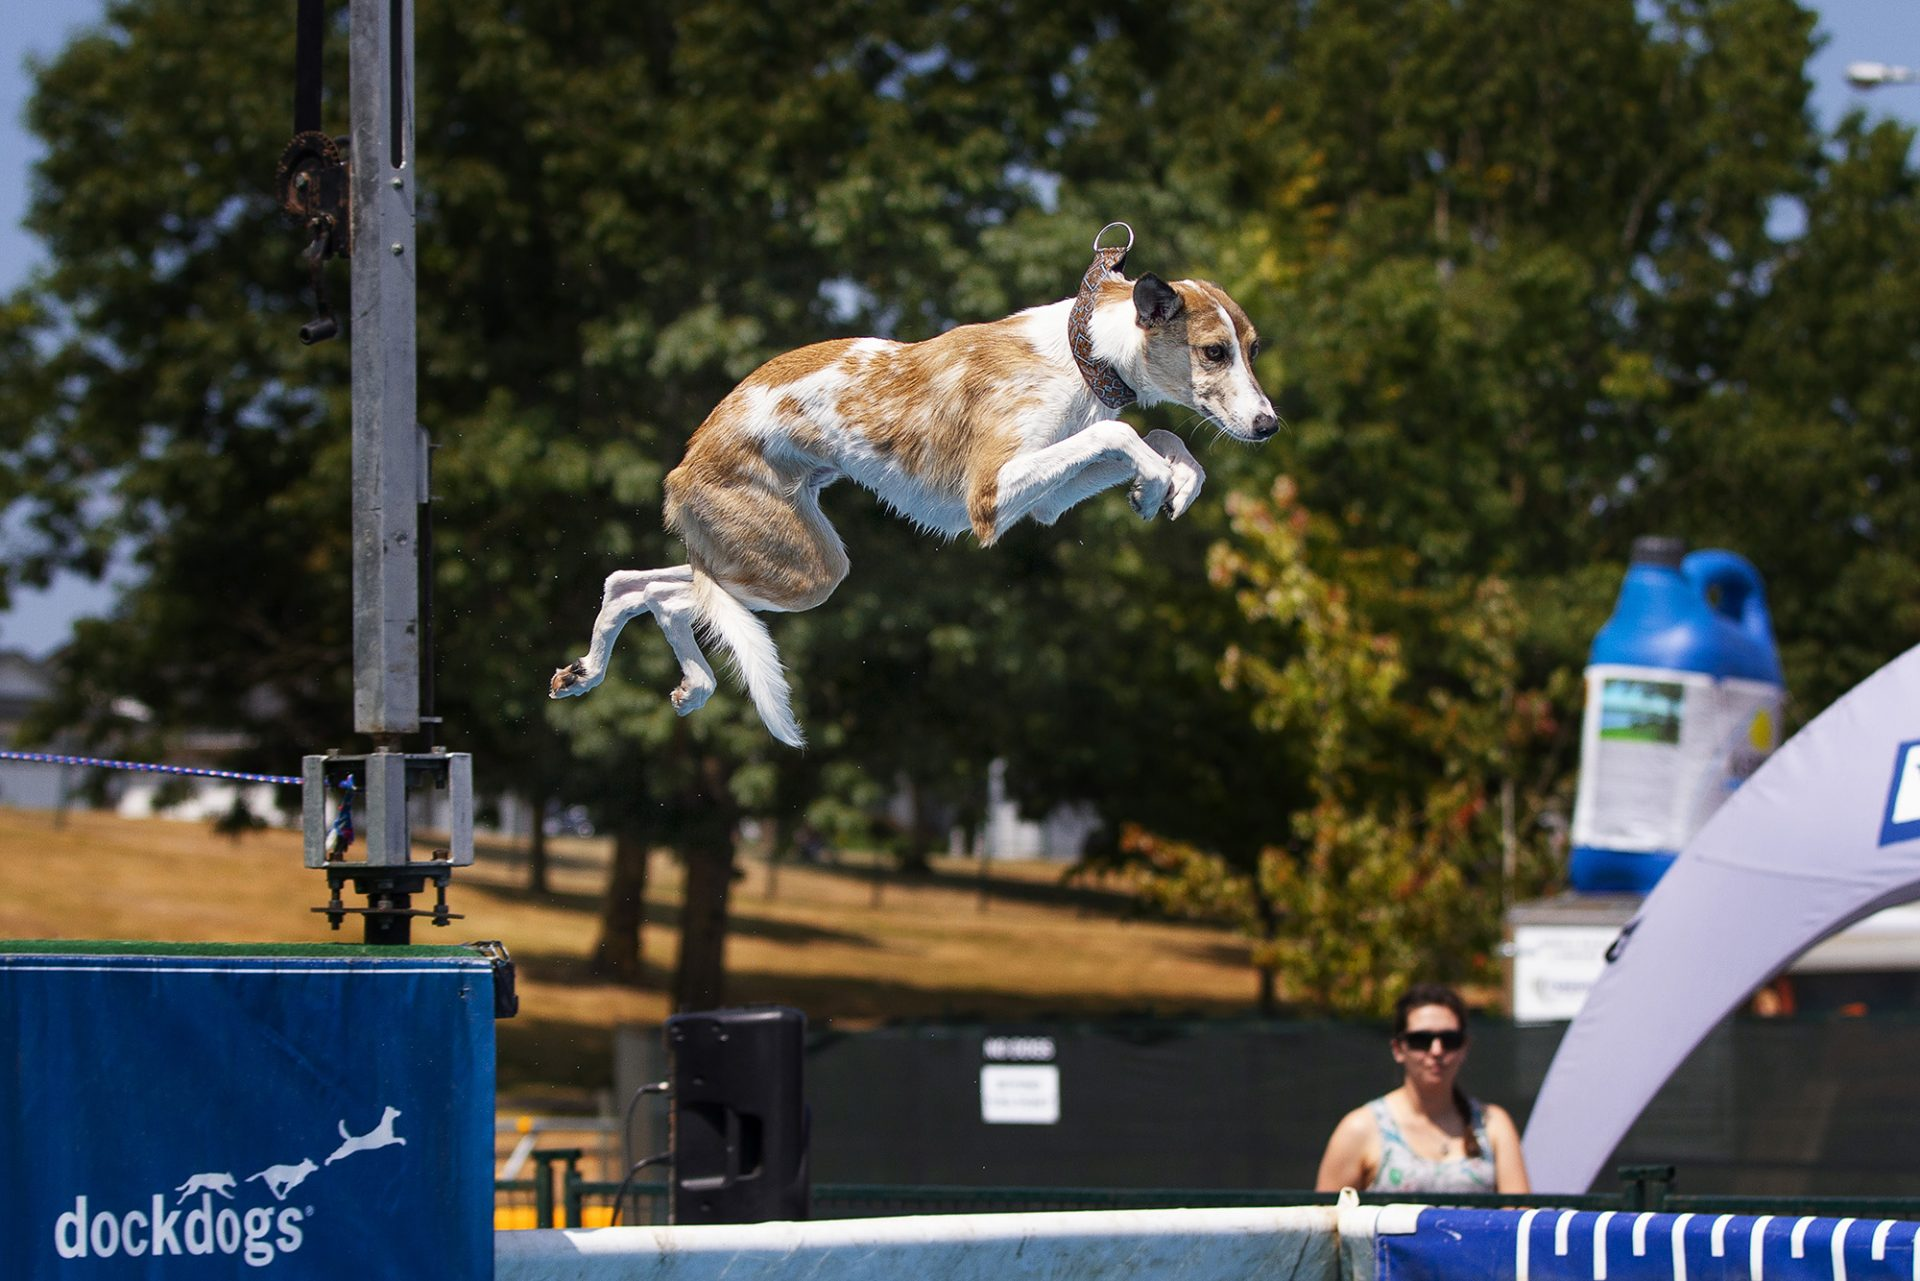 border collie whippet mix dog at dock diving